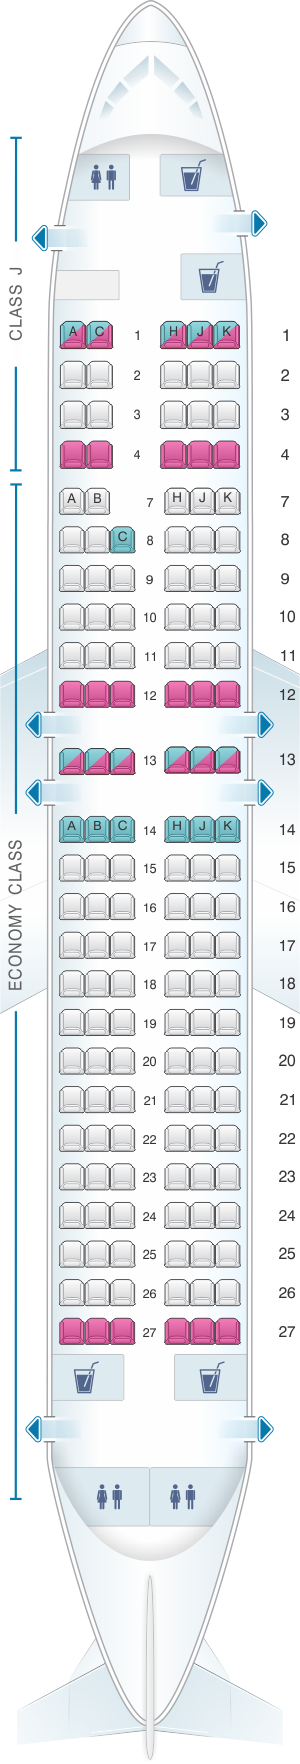 Seat map for Japan Airlines (JAL) Boeing B737 400 V51/55